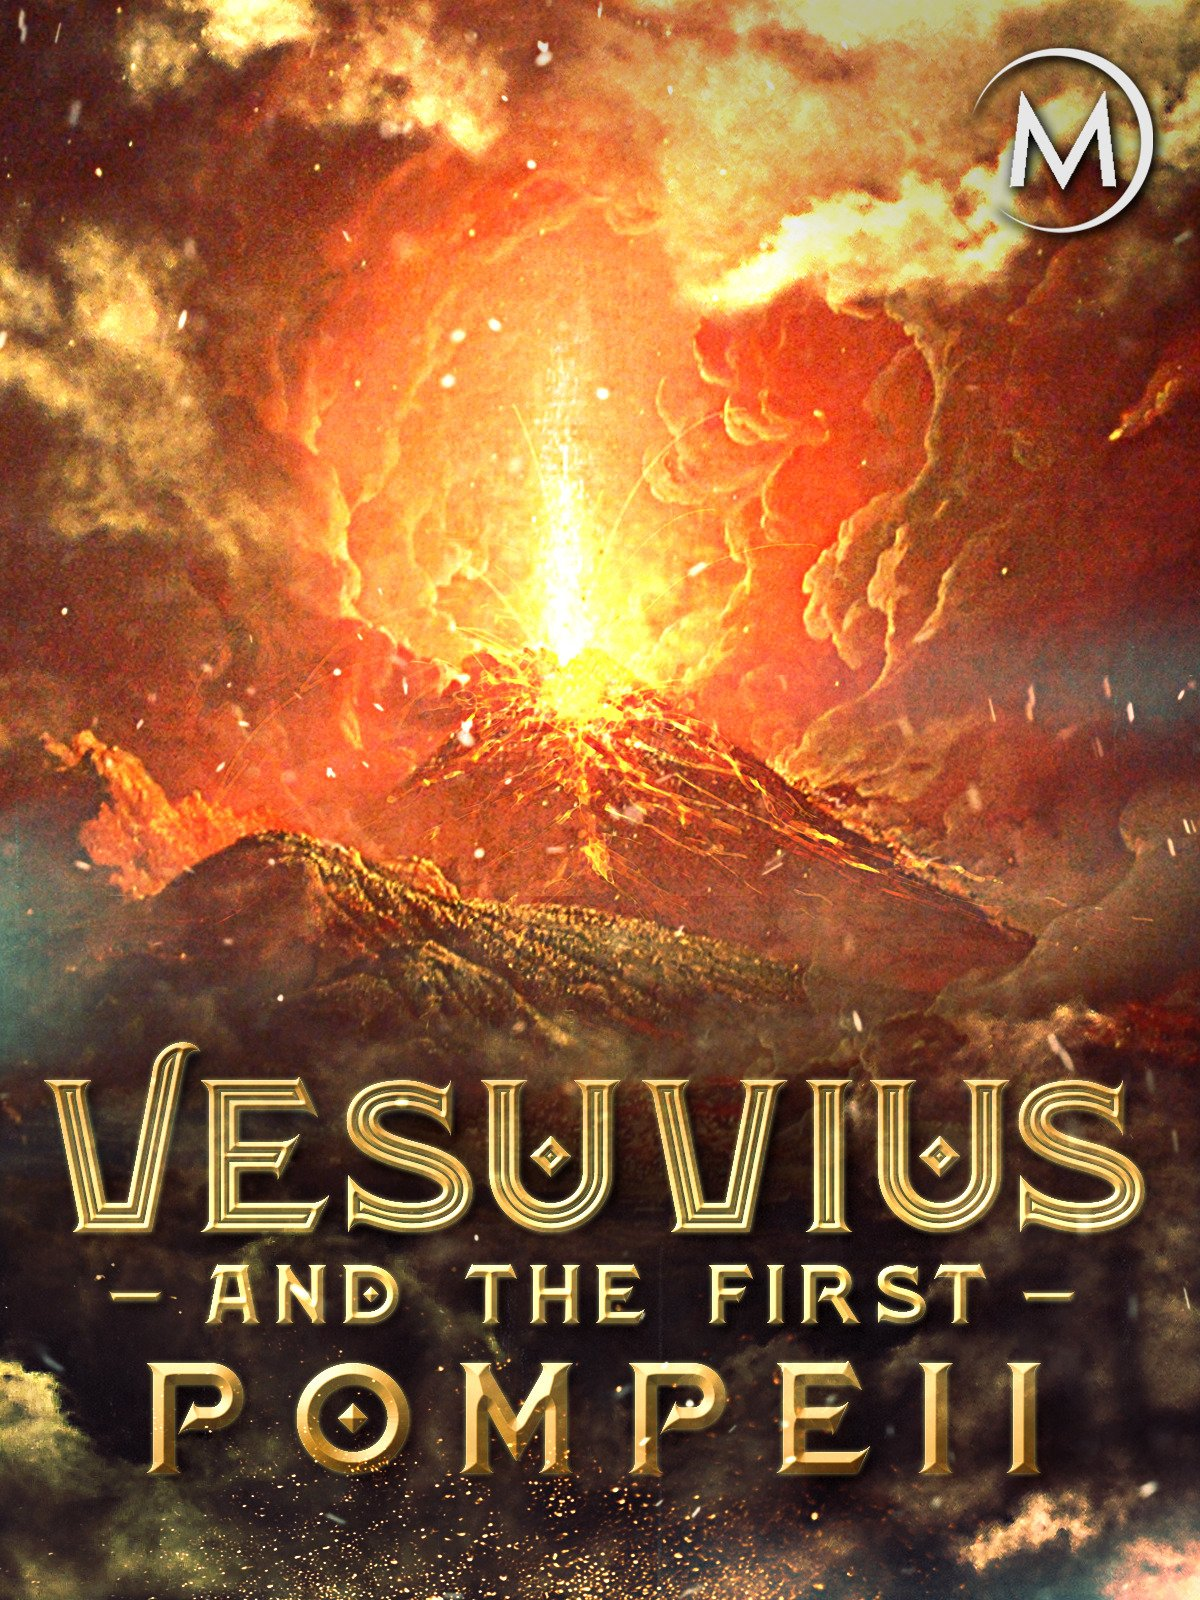 Vesuvius and the First Pompeii